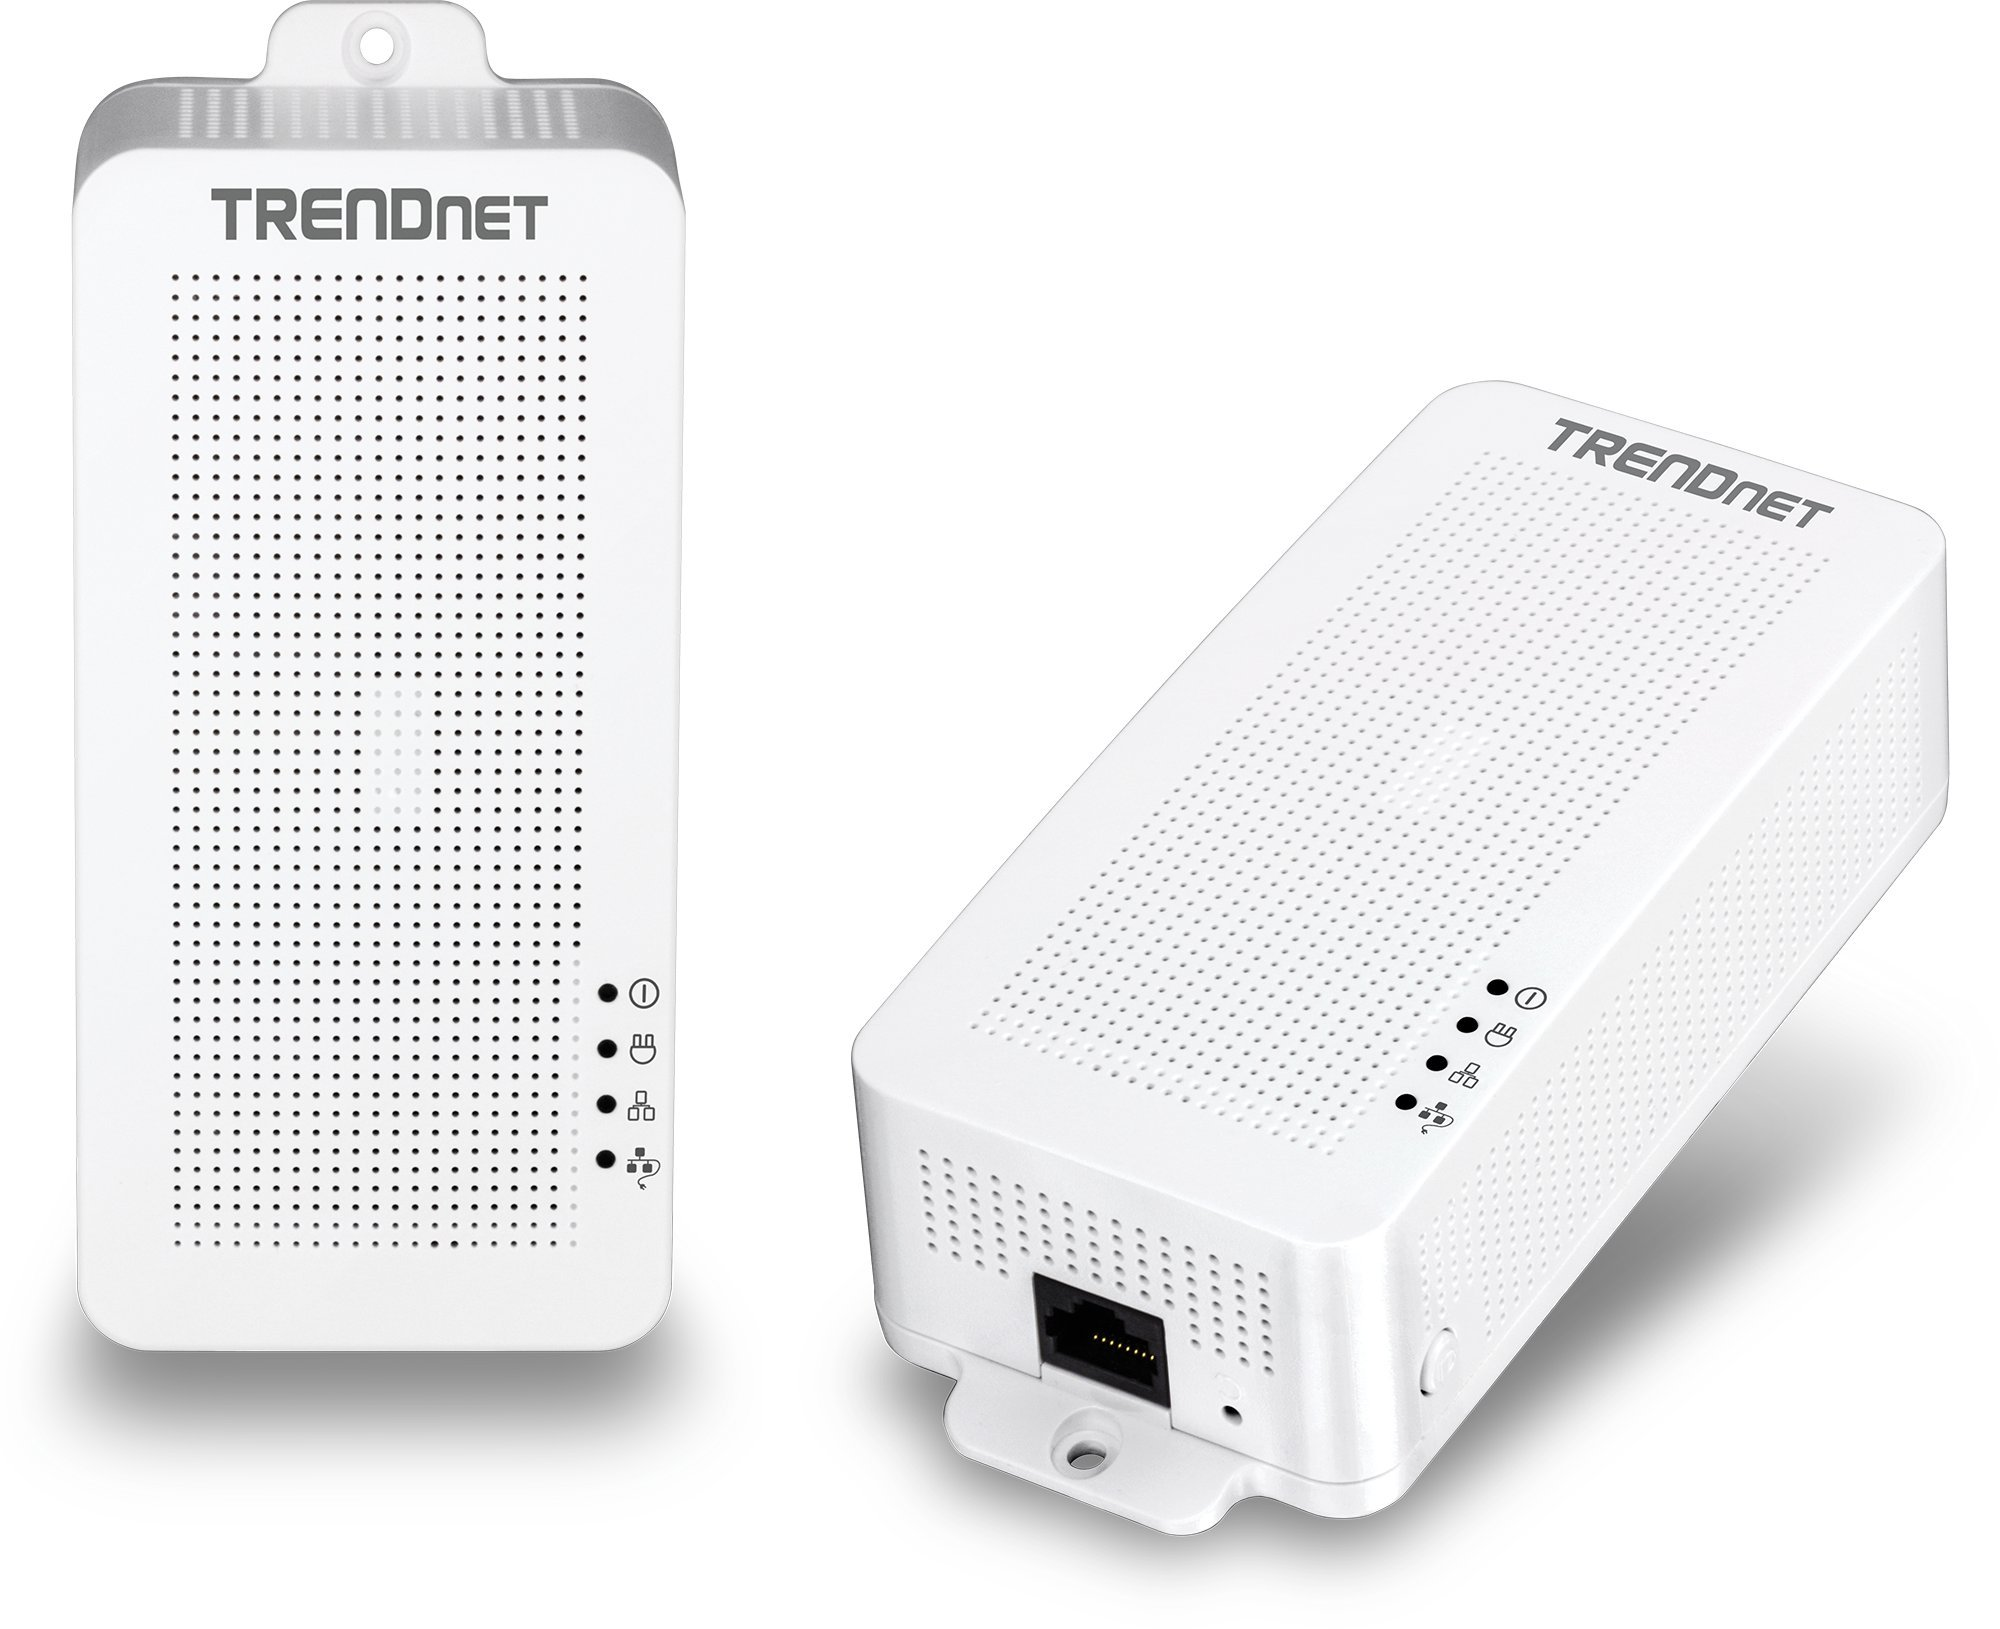 TRENDnet Powerline 200 AV PoE+ Adapter Kit, Output Port Supports PoE, 15.4W, 30W Devices, Includes Two TPL-331EP Adapters, Twin Pack, TPL-331EP2K by TRENDnet